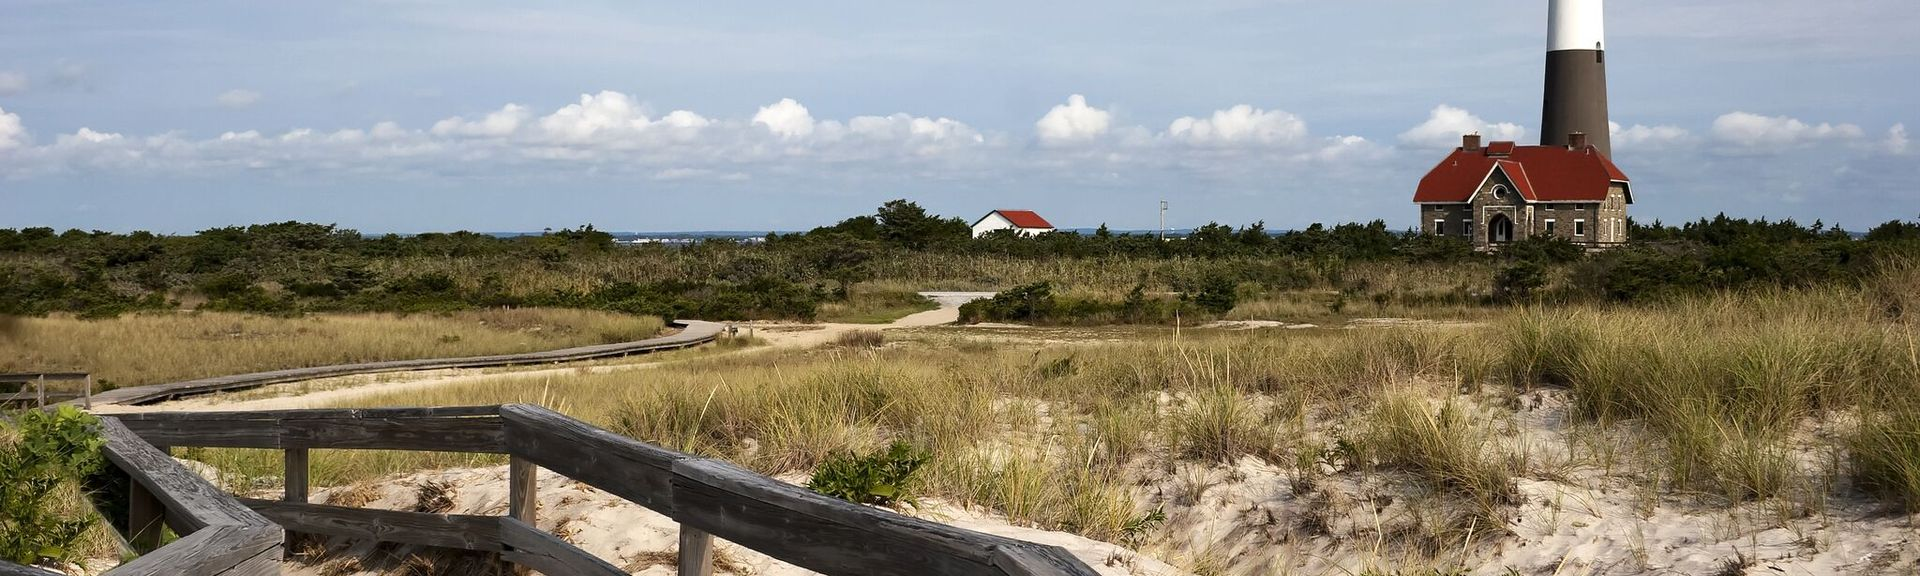 Fire Island, New York, Verenigde Staten